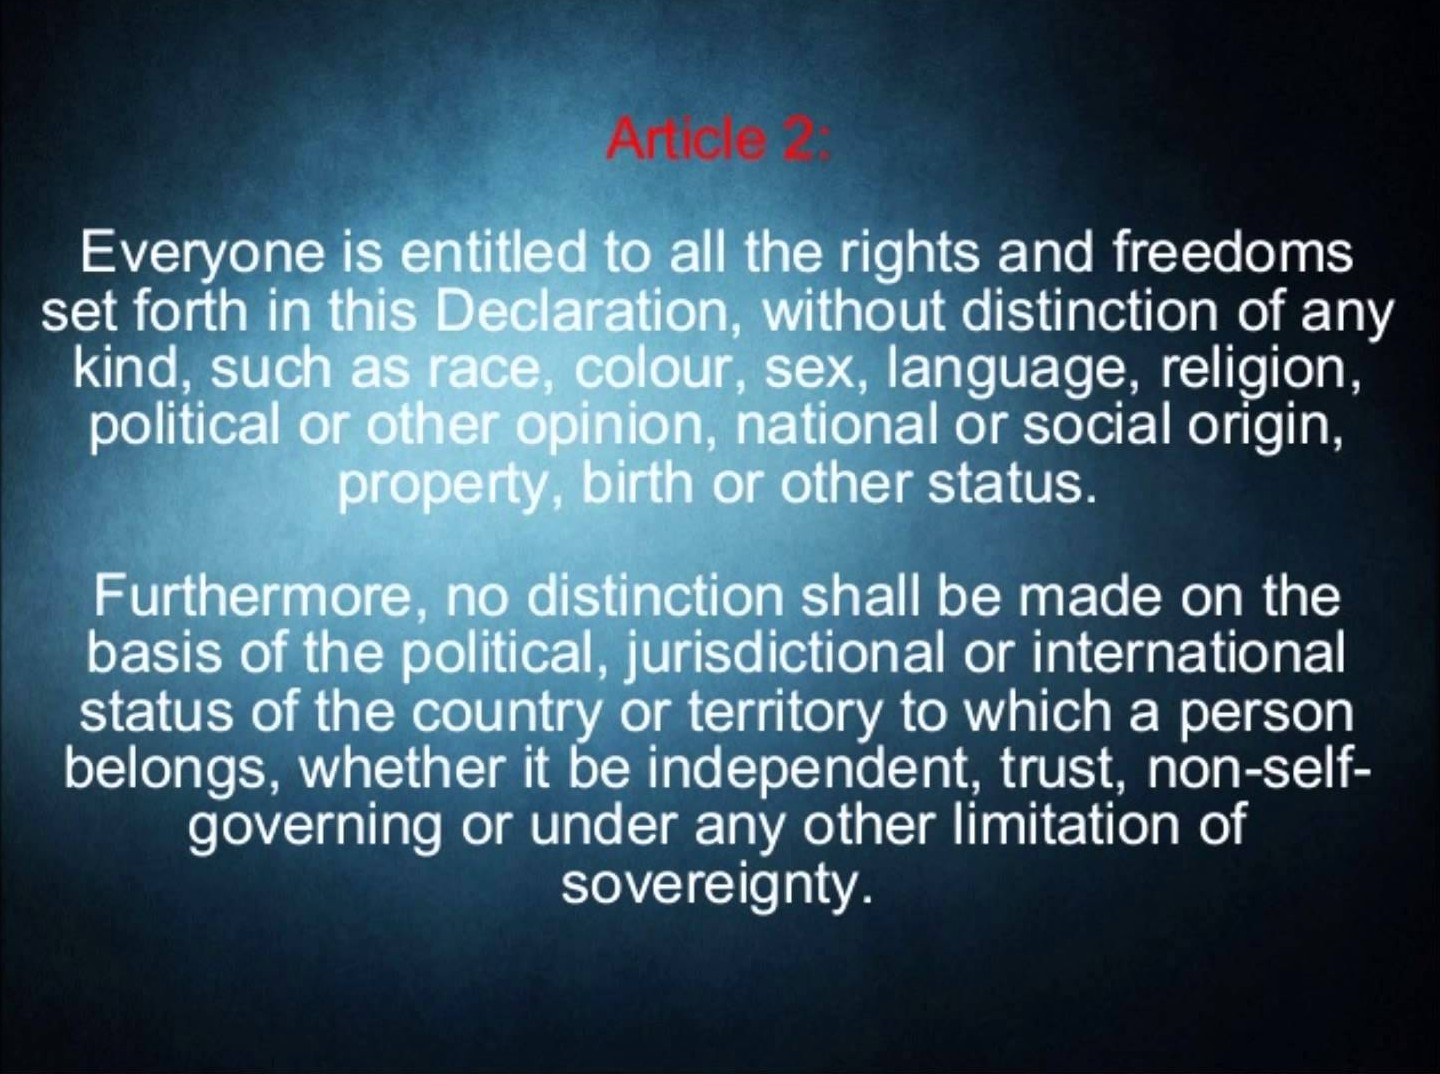 international covenants and treaties – udhr, iccpr, icescr